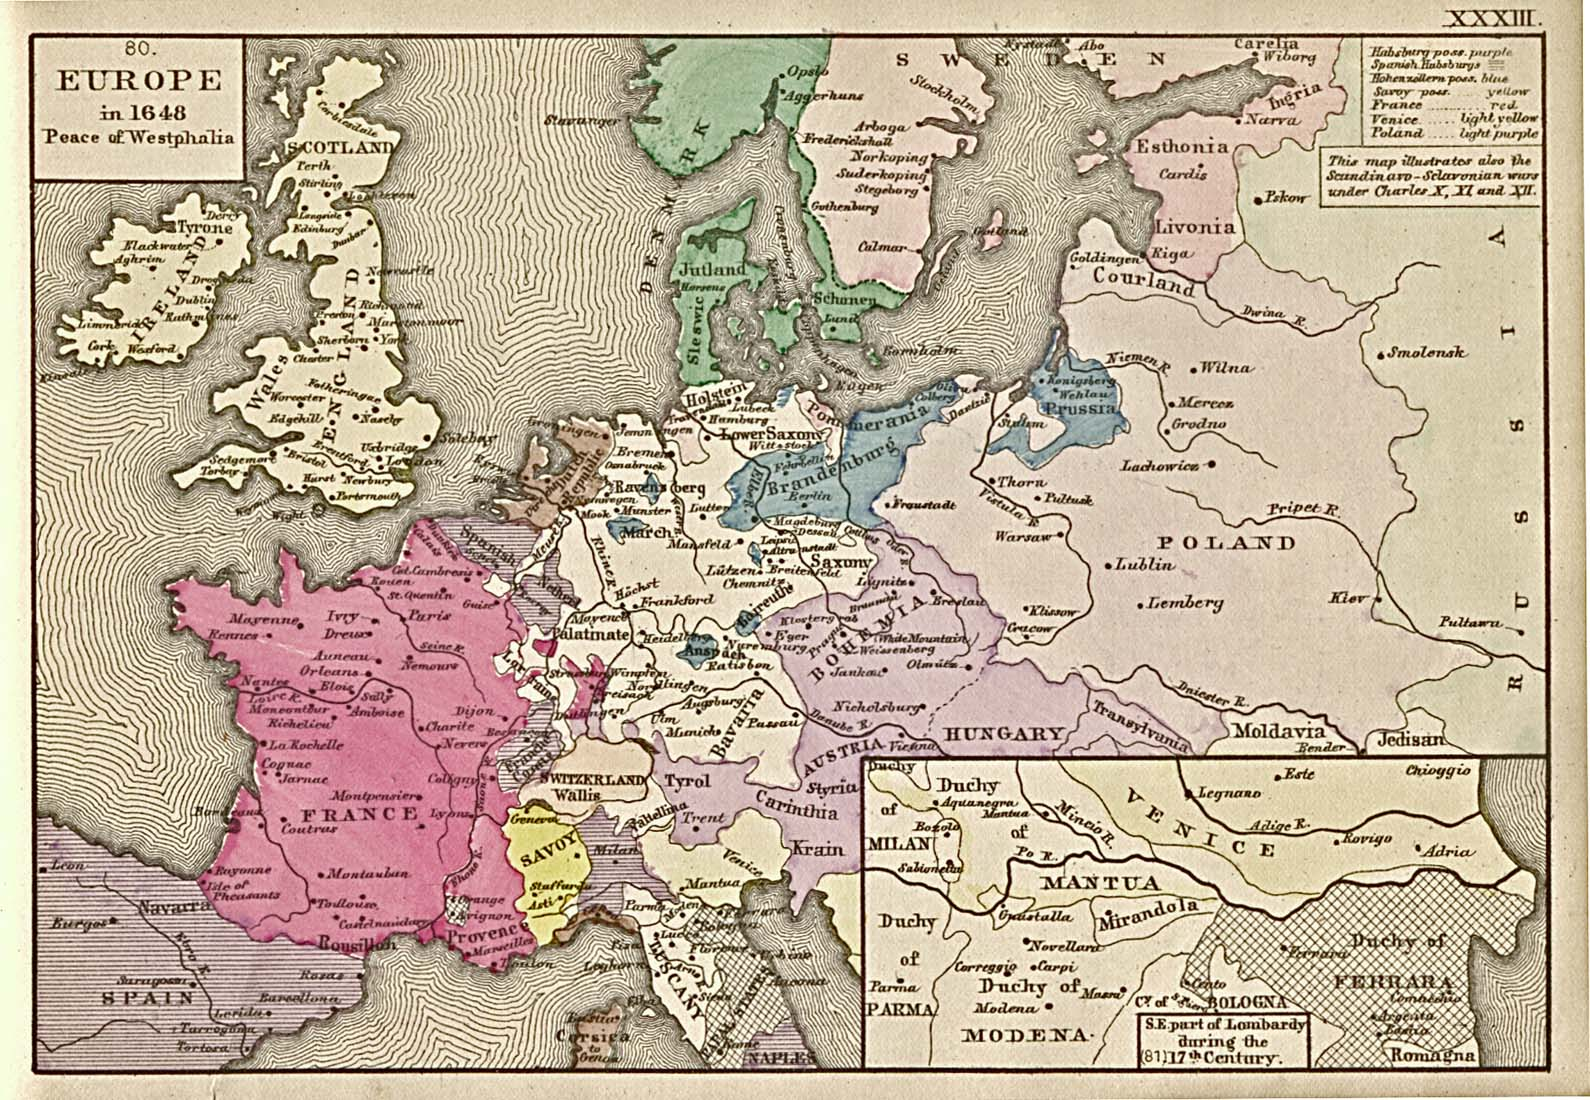 "Historical Maps of Europe. Europe in 1648 - Peace of Westphalia (452K) ""Europe in 1648.-Peace of Westphalia; showing especially (a,) The Possessions of the two branches of the house of Habsburg at the end of the Thirty Years War (purple). (b,) The possessions of the house of Hohenzollern, (union of Prussia with Brandeburg [blue.]). (c,) The Swedish Empire on both shores of the Baltic and in Northern Germany. (d,) The Danish Monarchy, Denmark, Norway, and Schonen. (e,) The British isles, with the battle-fields of the civil wars. (f,) France, with the battle-fields of the civil wars [red]. (g,) Germany with the battle-fields of the Thirty Years War. (h,) The republic of Poland in its greatest extent. (i,) The Western Boundary of Russia."" From ""An Historical Atlas Containing a Chronological Series of One Hundred and Four Maps, at Successive Periods, from the Dawn of History to the Present Day."" by Robert H. Labberton. Sixth Edition. 1884."